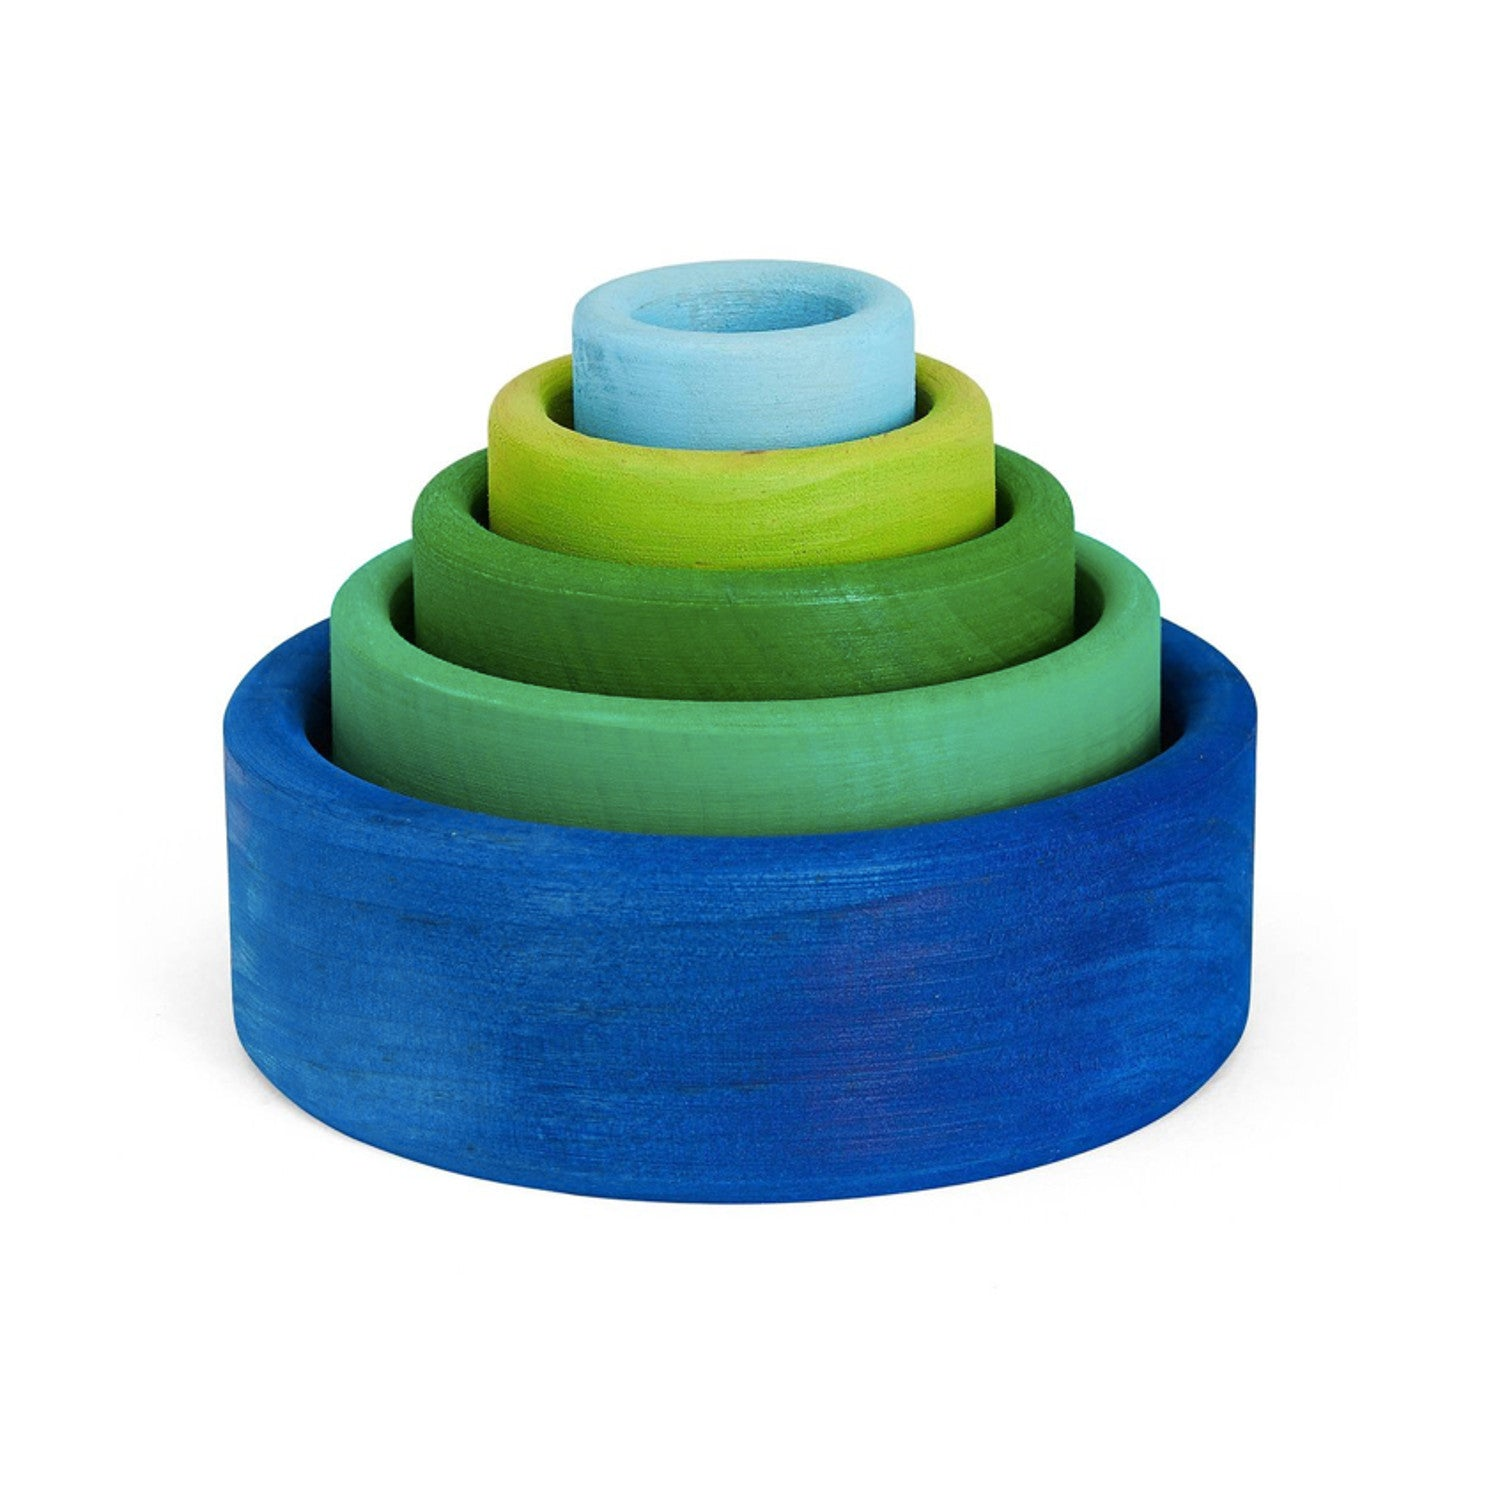 Grimm's Stacking Bowls – Ocean Blue Outside